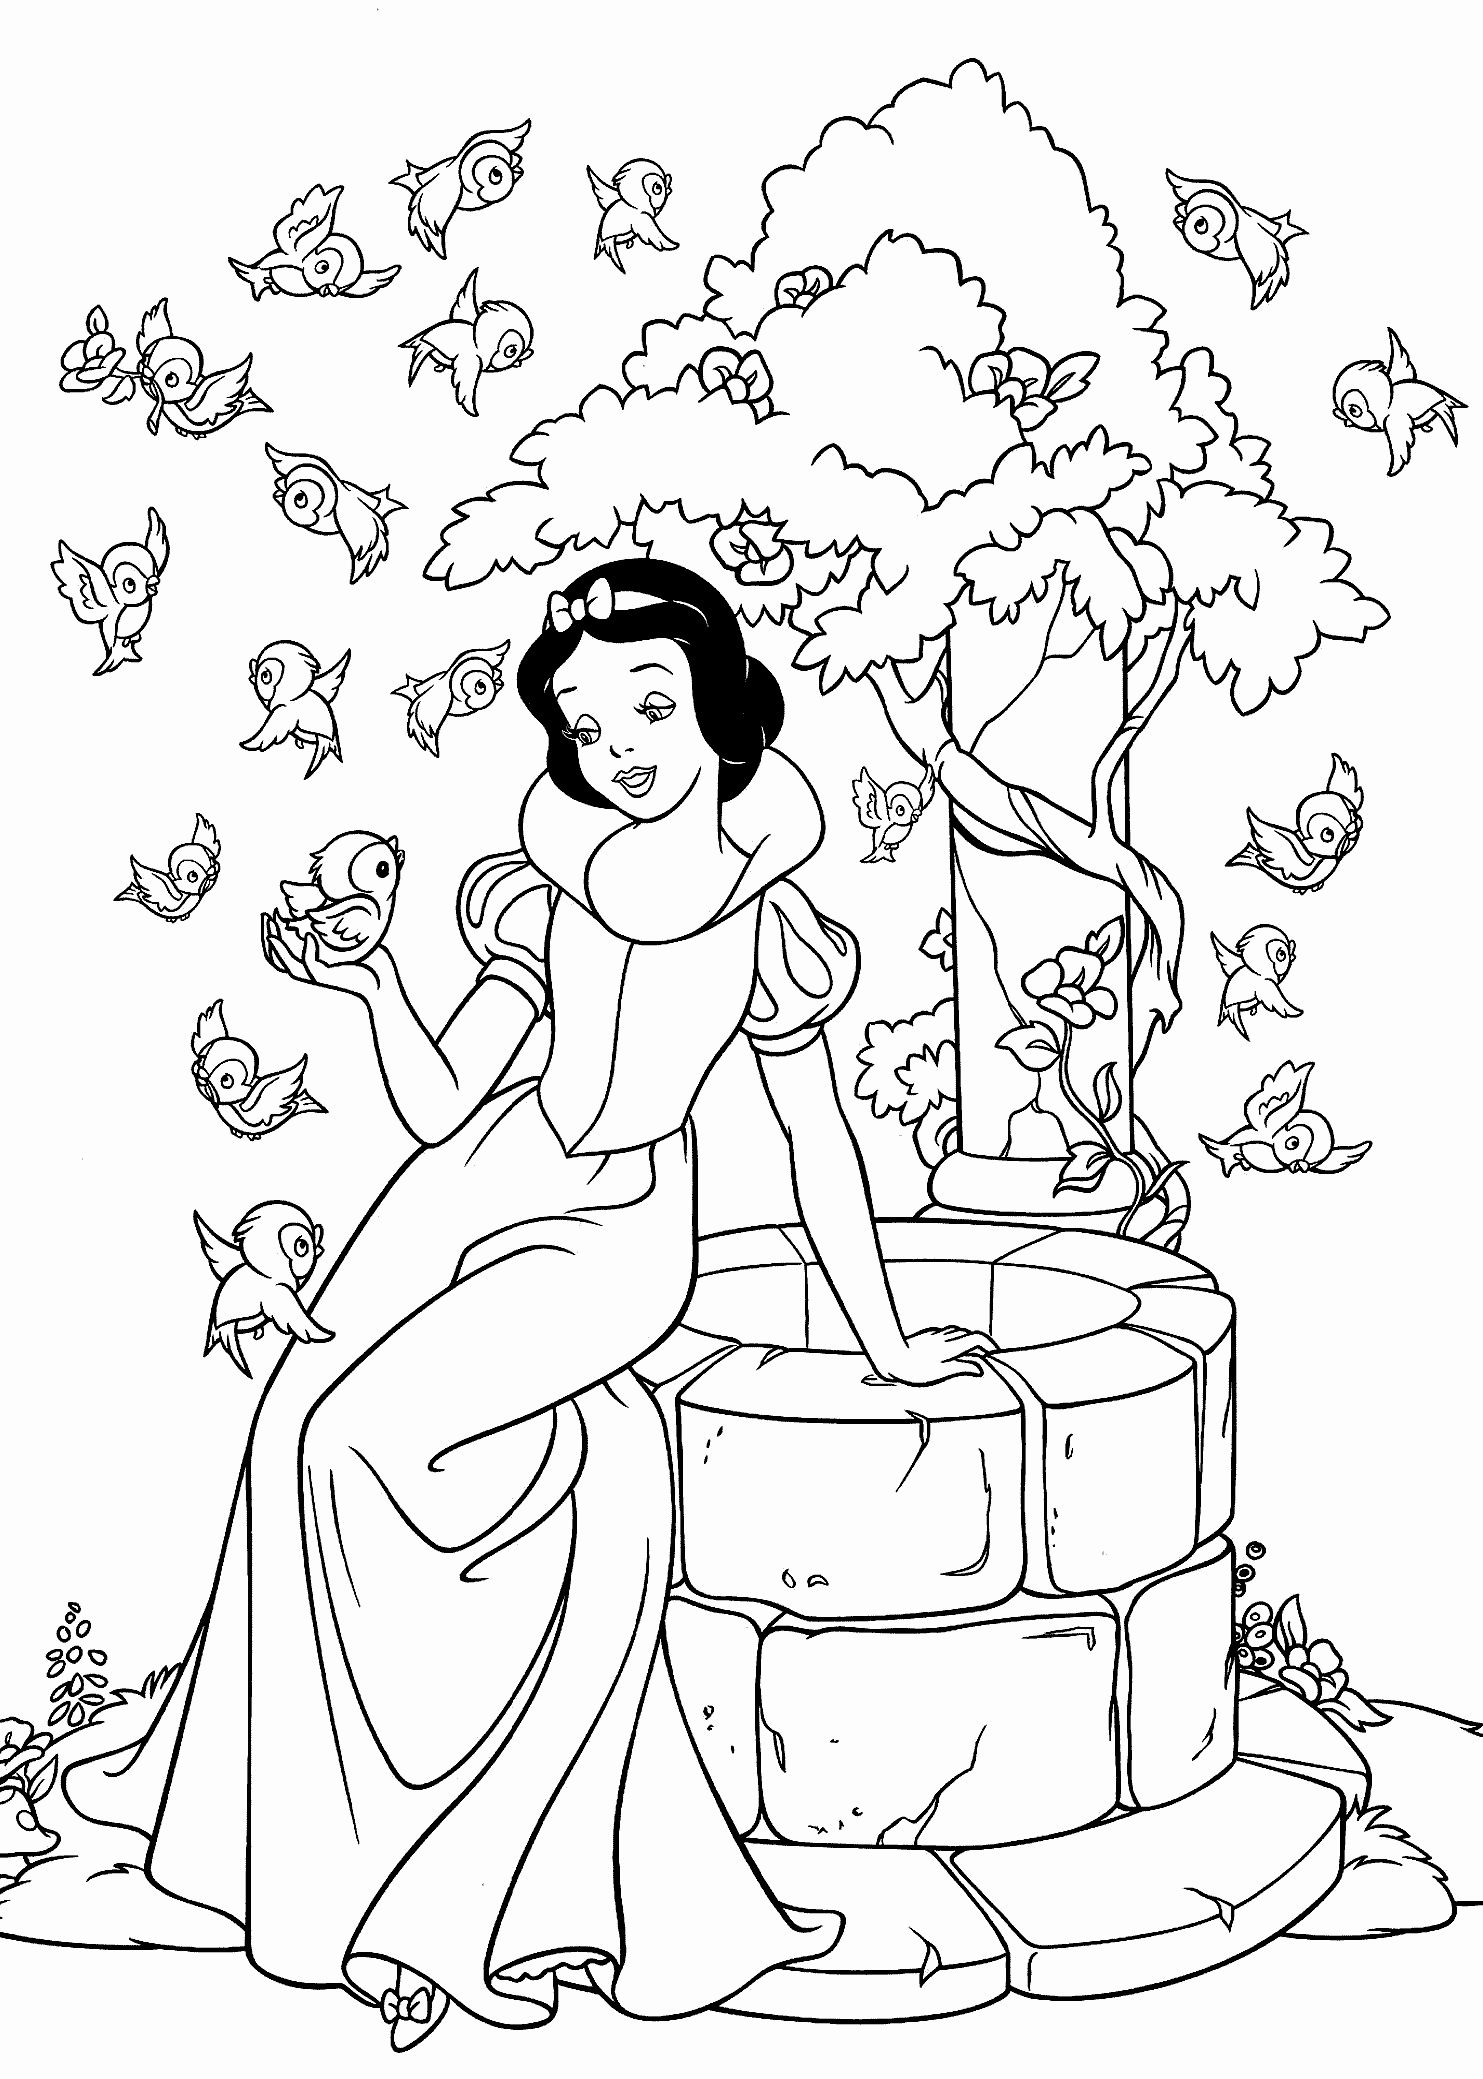 Disney Snow White Coloring Pages New Princess Snow White Coloring Pages For Kids Disney Princess Coloring Pages Snow White Coloring Pages Disney Coloring Pages